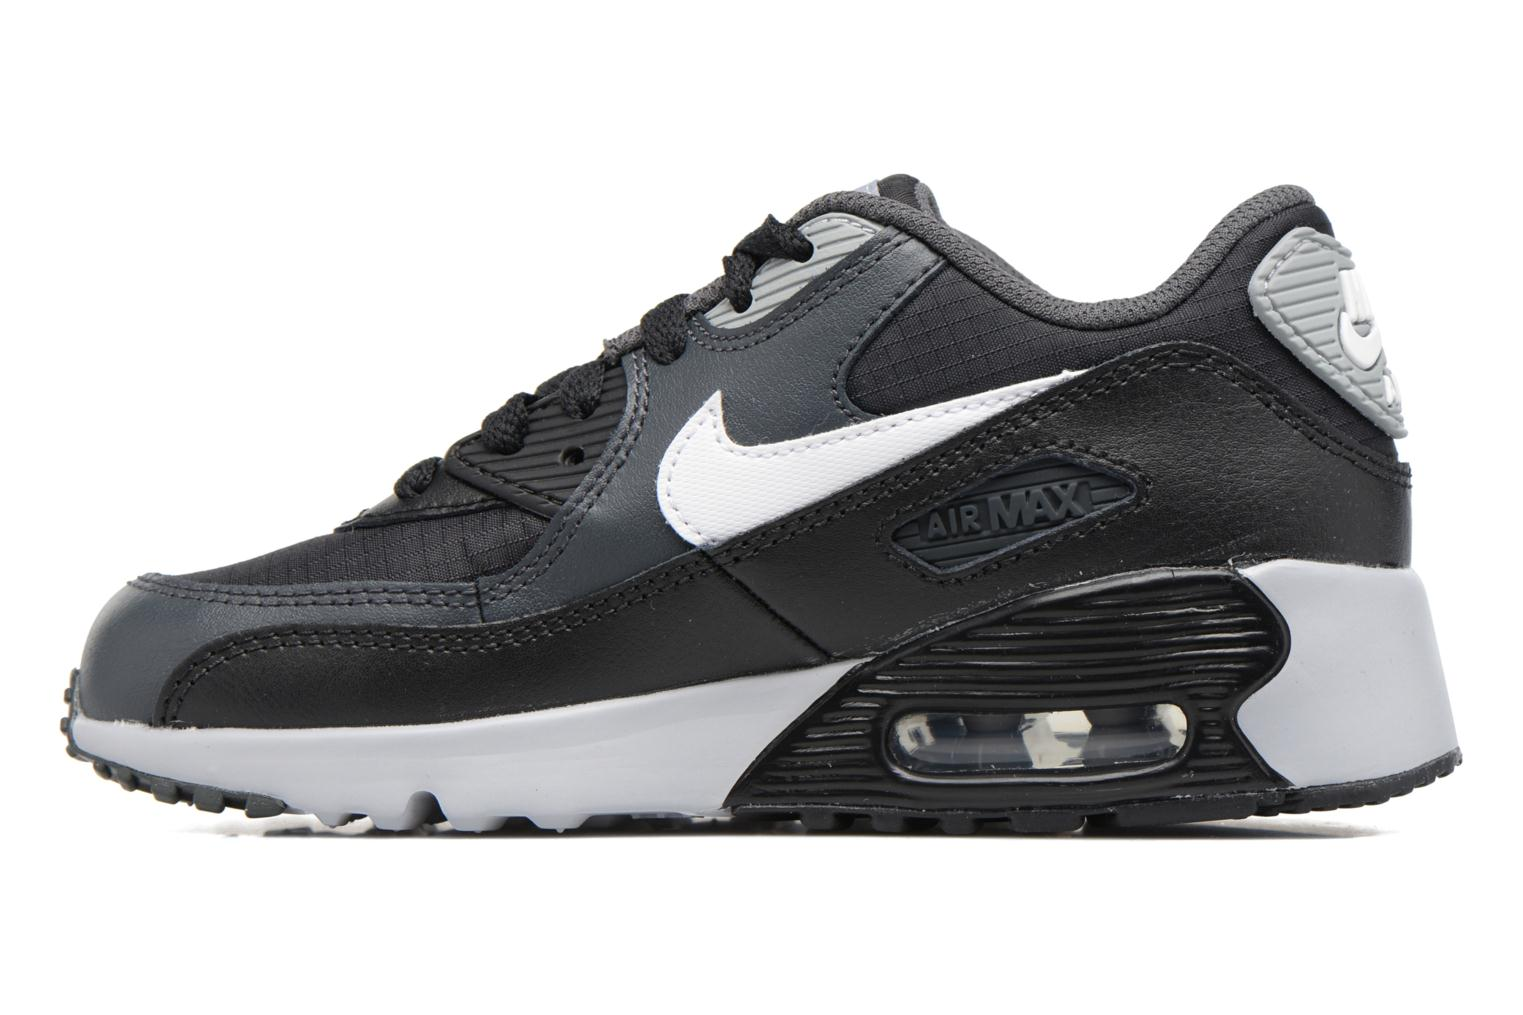 NIKE AIR MAX 90 MESH (PS) Black/White-Anthracite-Wolf Grey